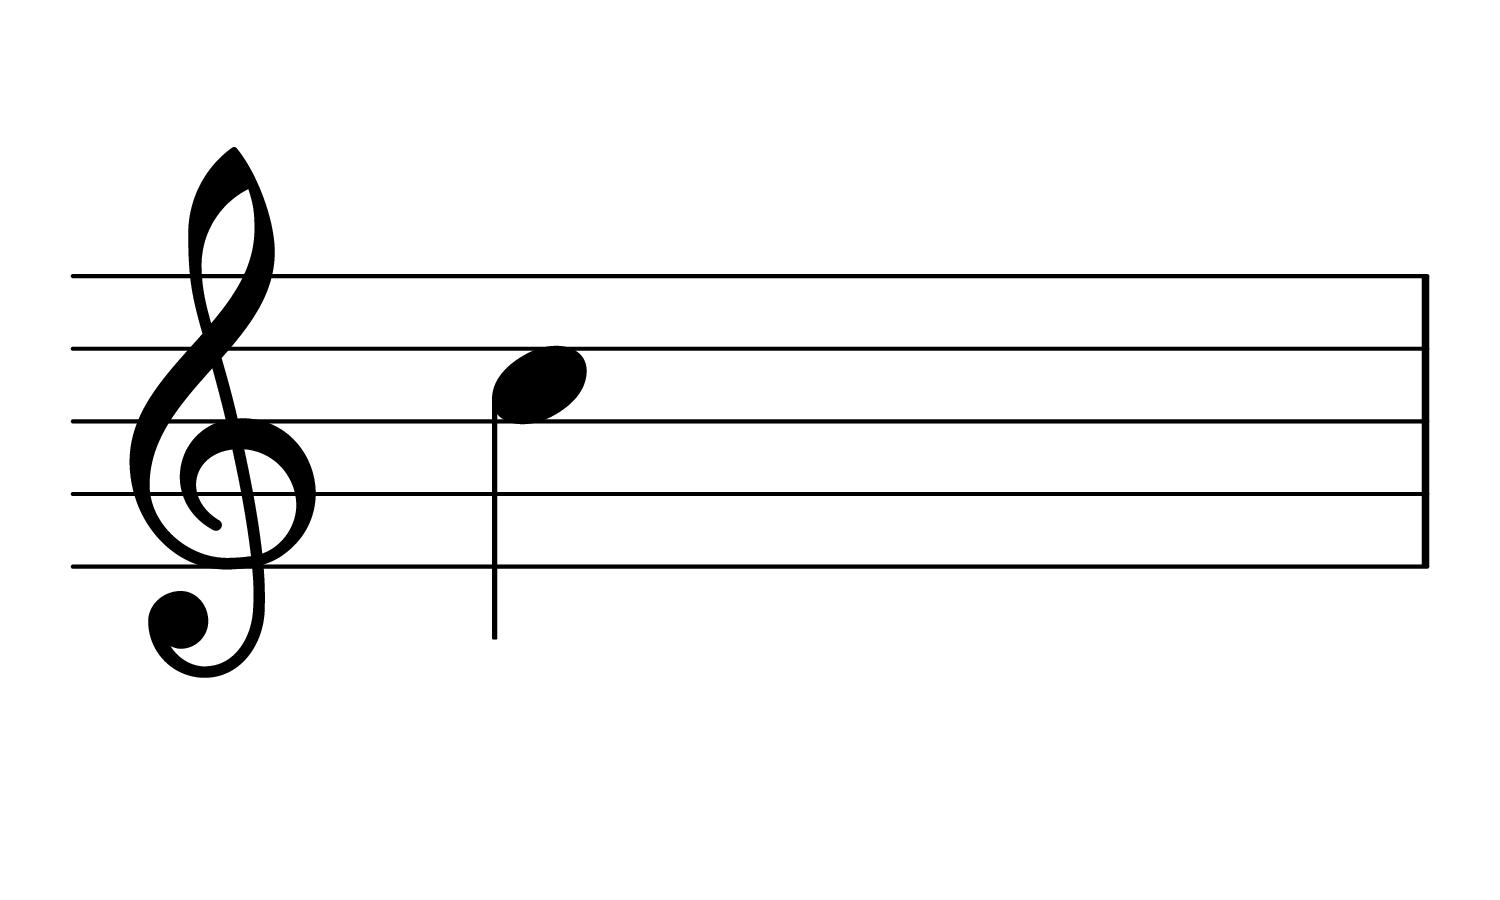 The note Treble C on the musical staff.